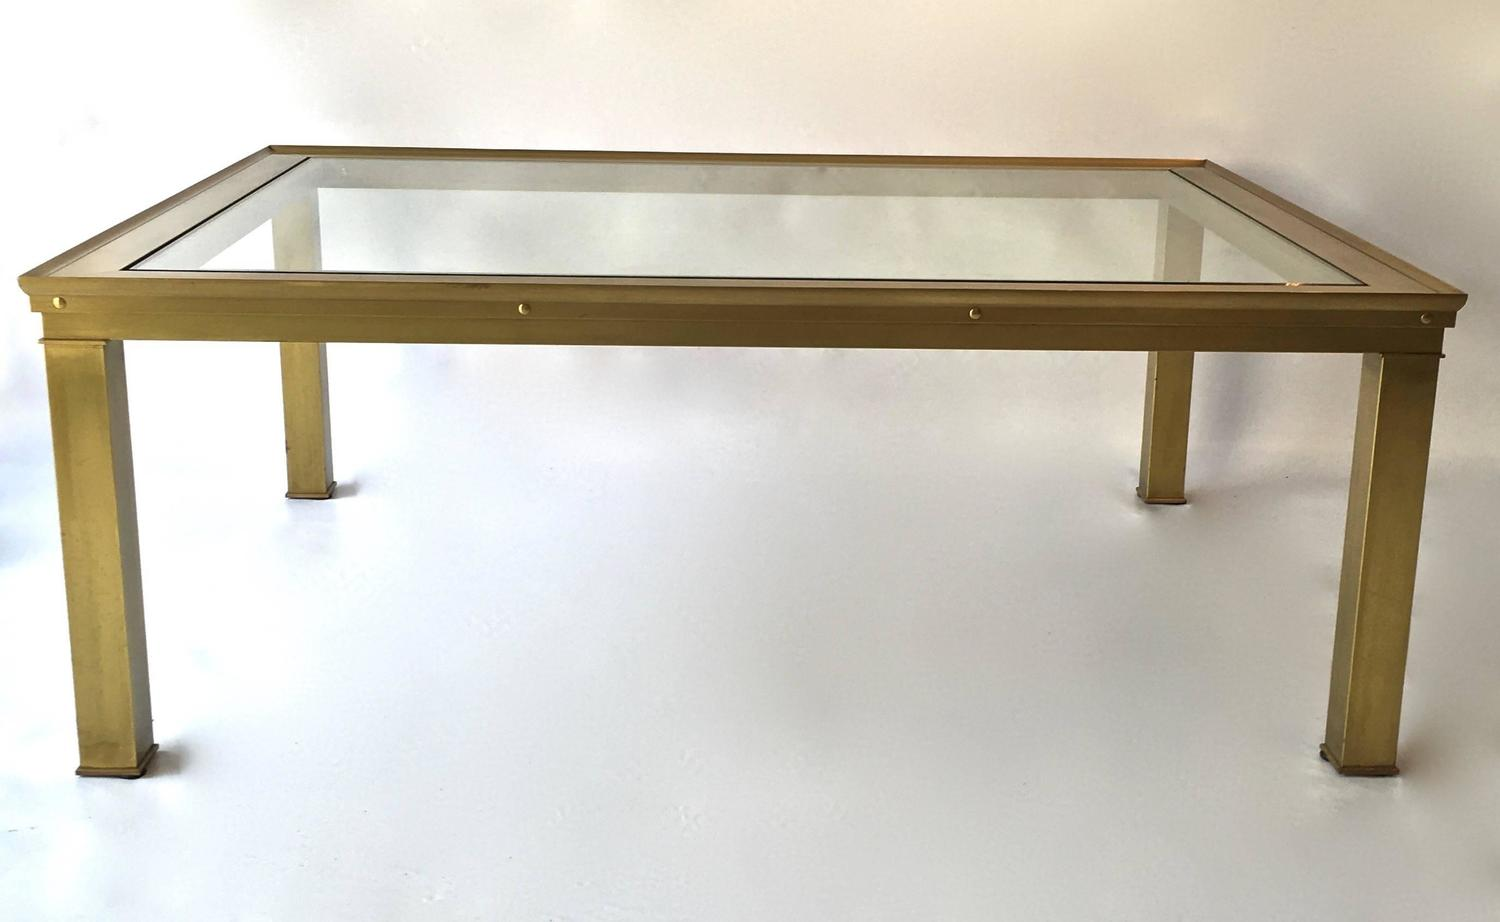 Mastercraft Solid Brass And Glass Top Coffee Table With Greek Key Inset At 1stdibs